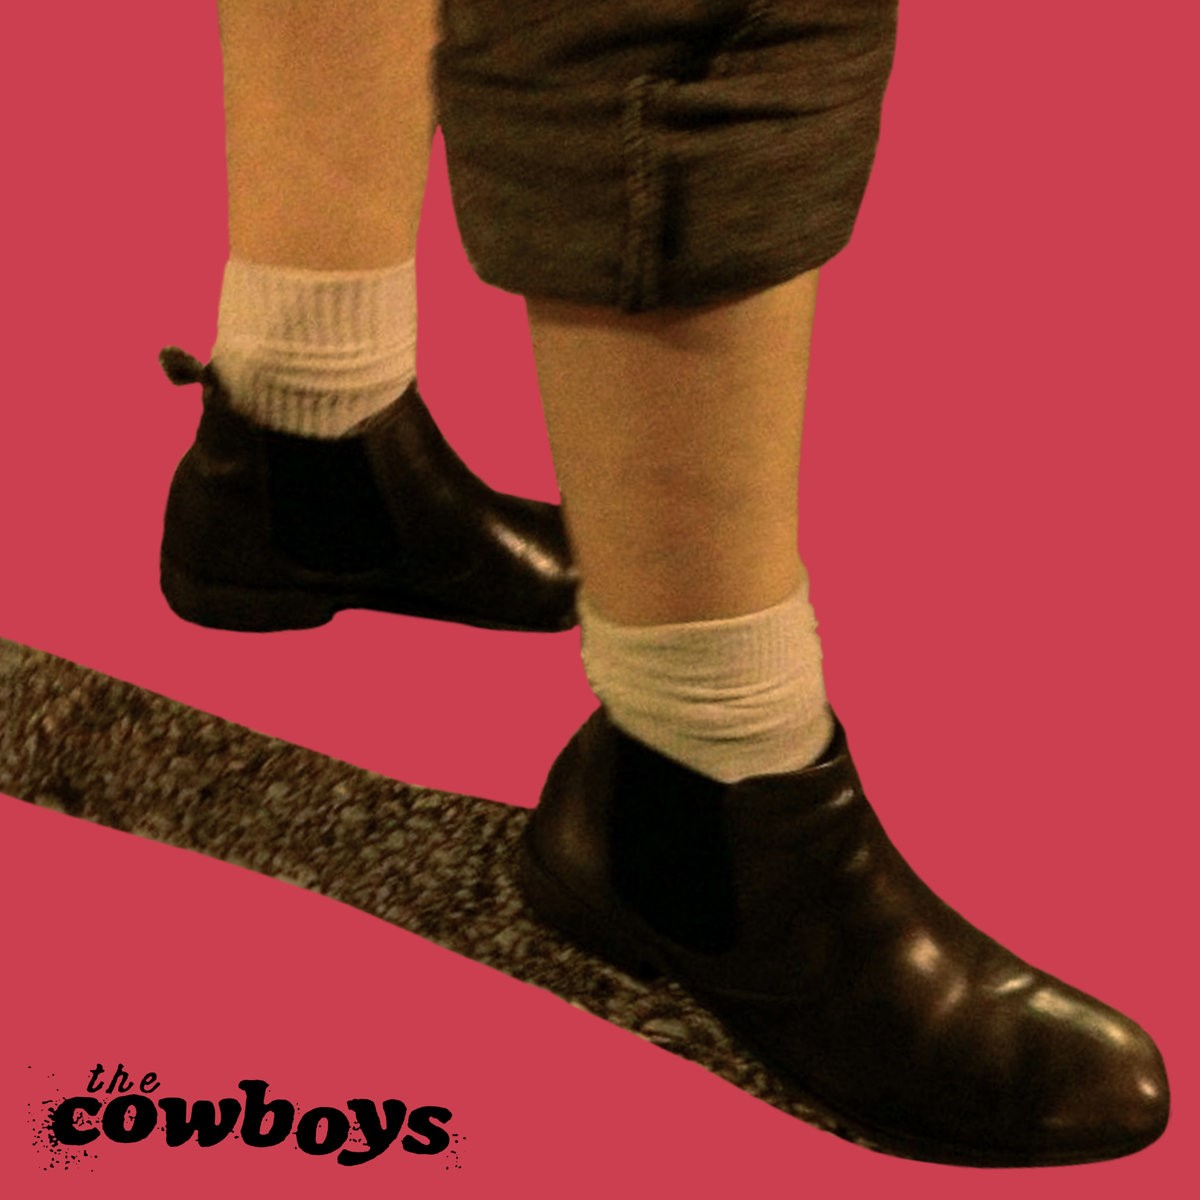 The Cowboys Vol 4 artwork